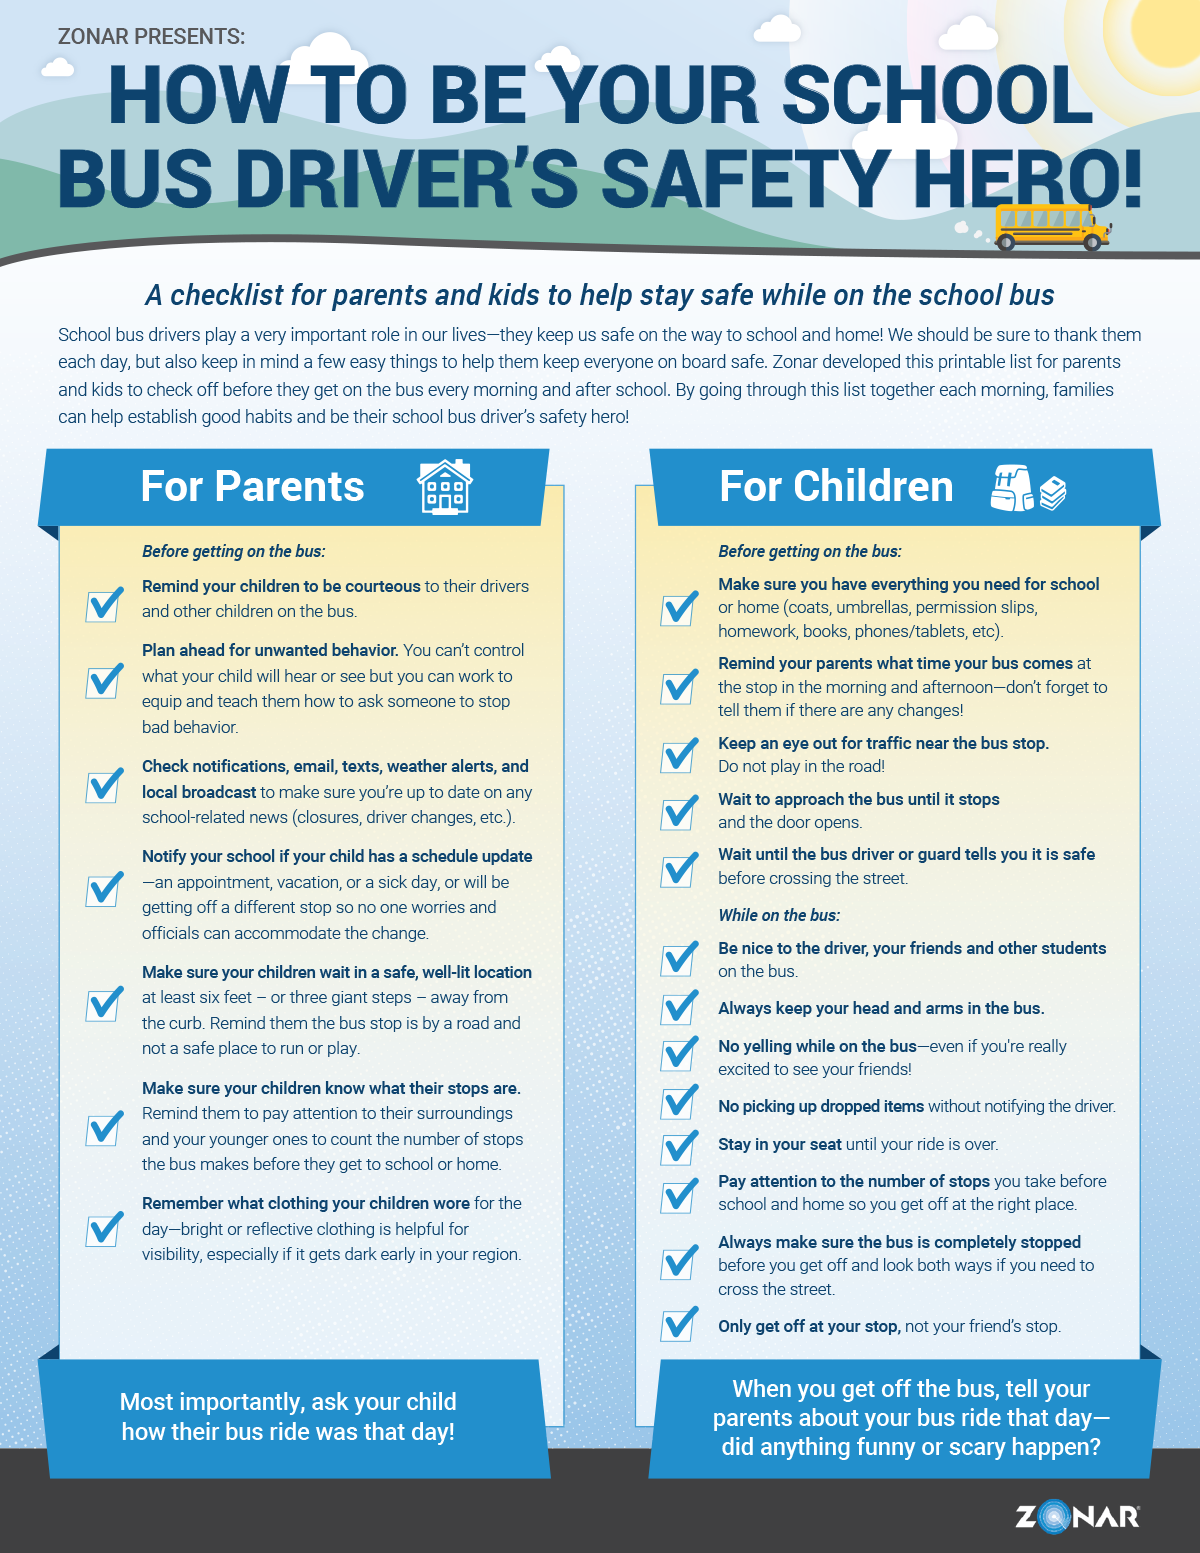 Check list for parents and kids to help stay safe on the school bus